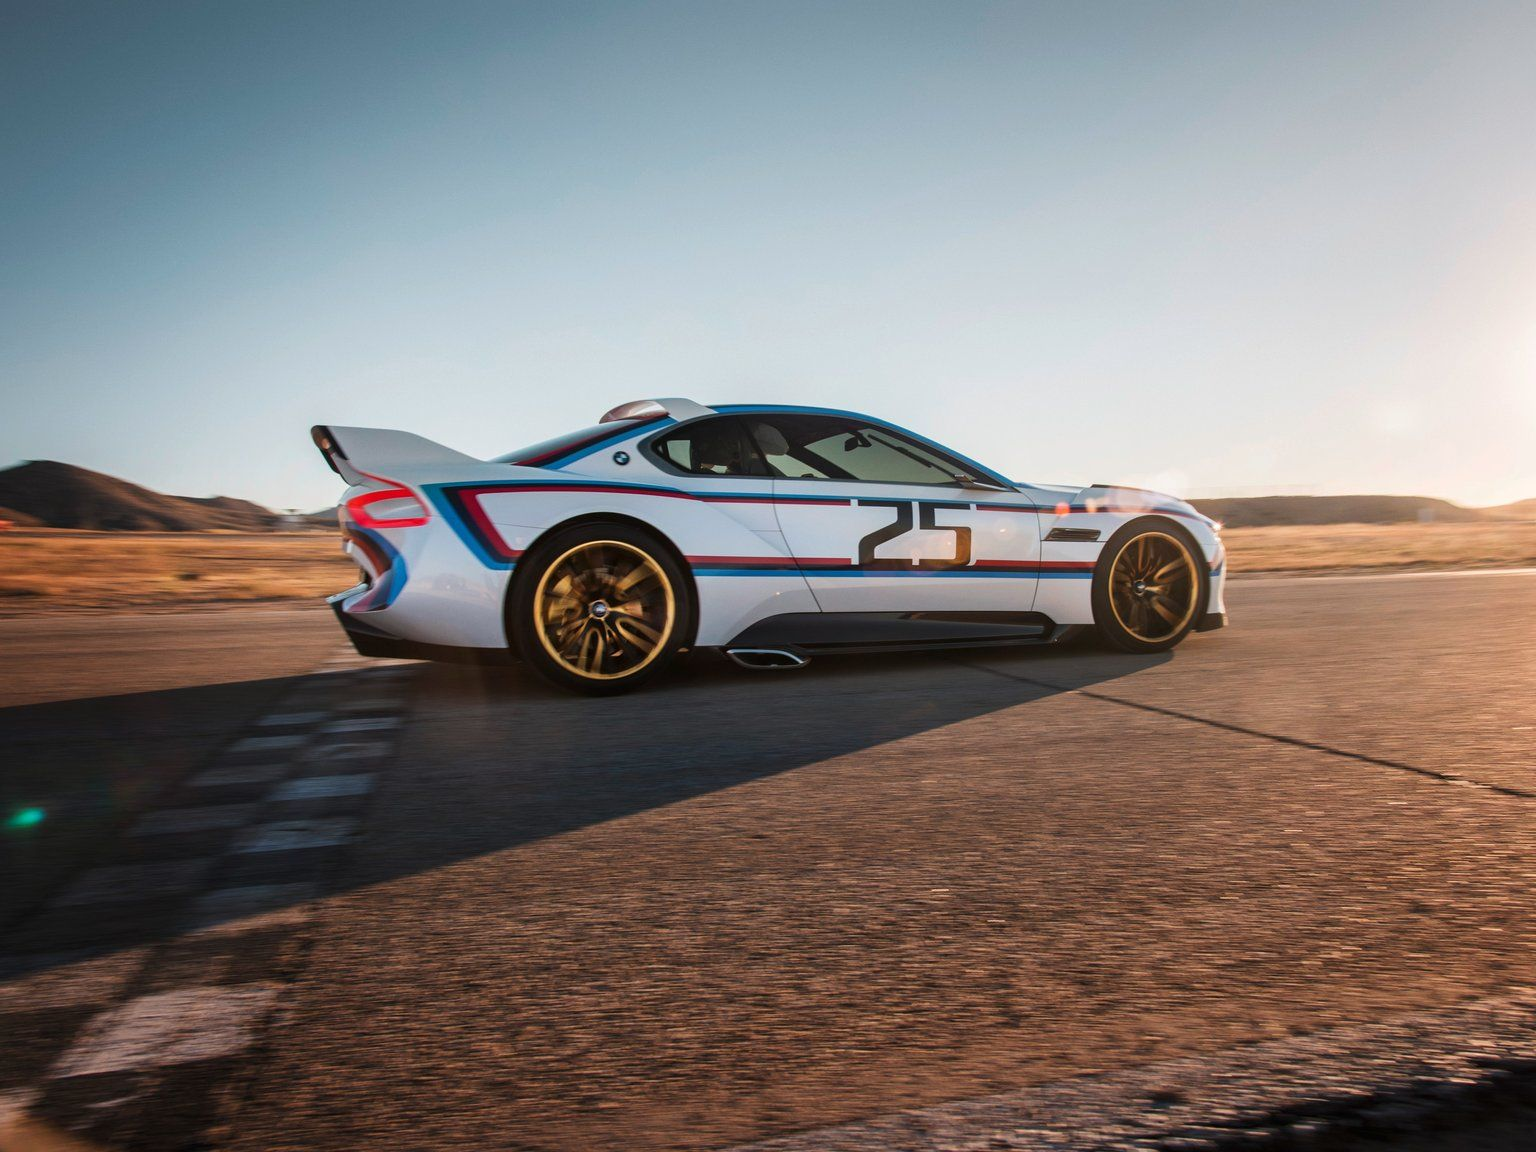 To pay homage to the legendary 3.0 CSL, BMW has built the 3.0 CSL Hommage R concept.